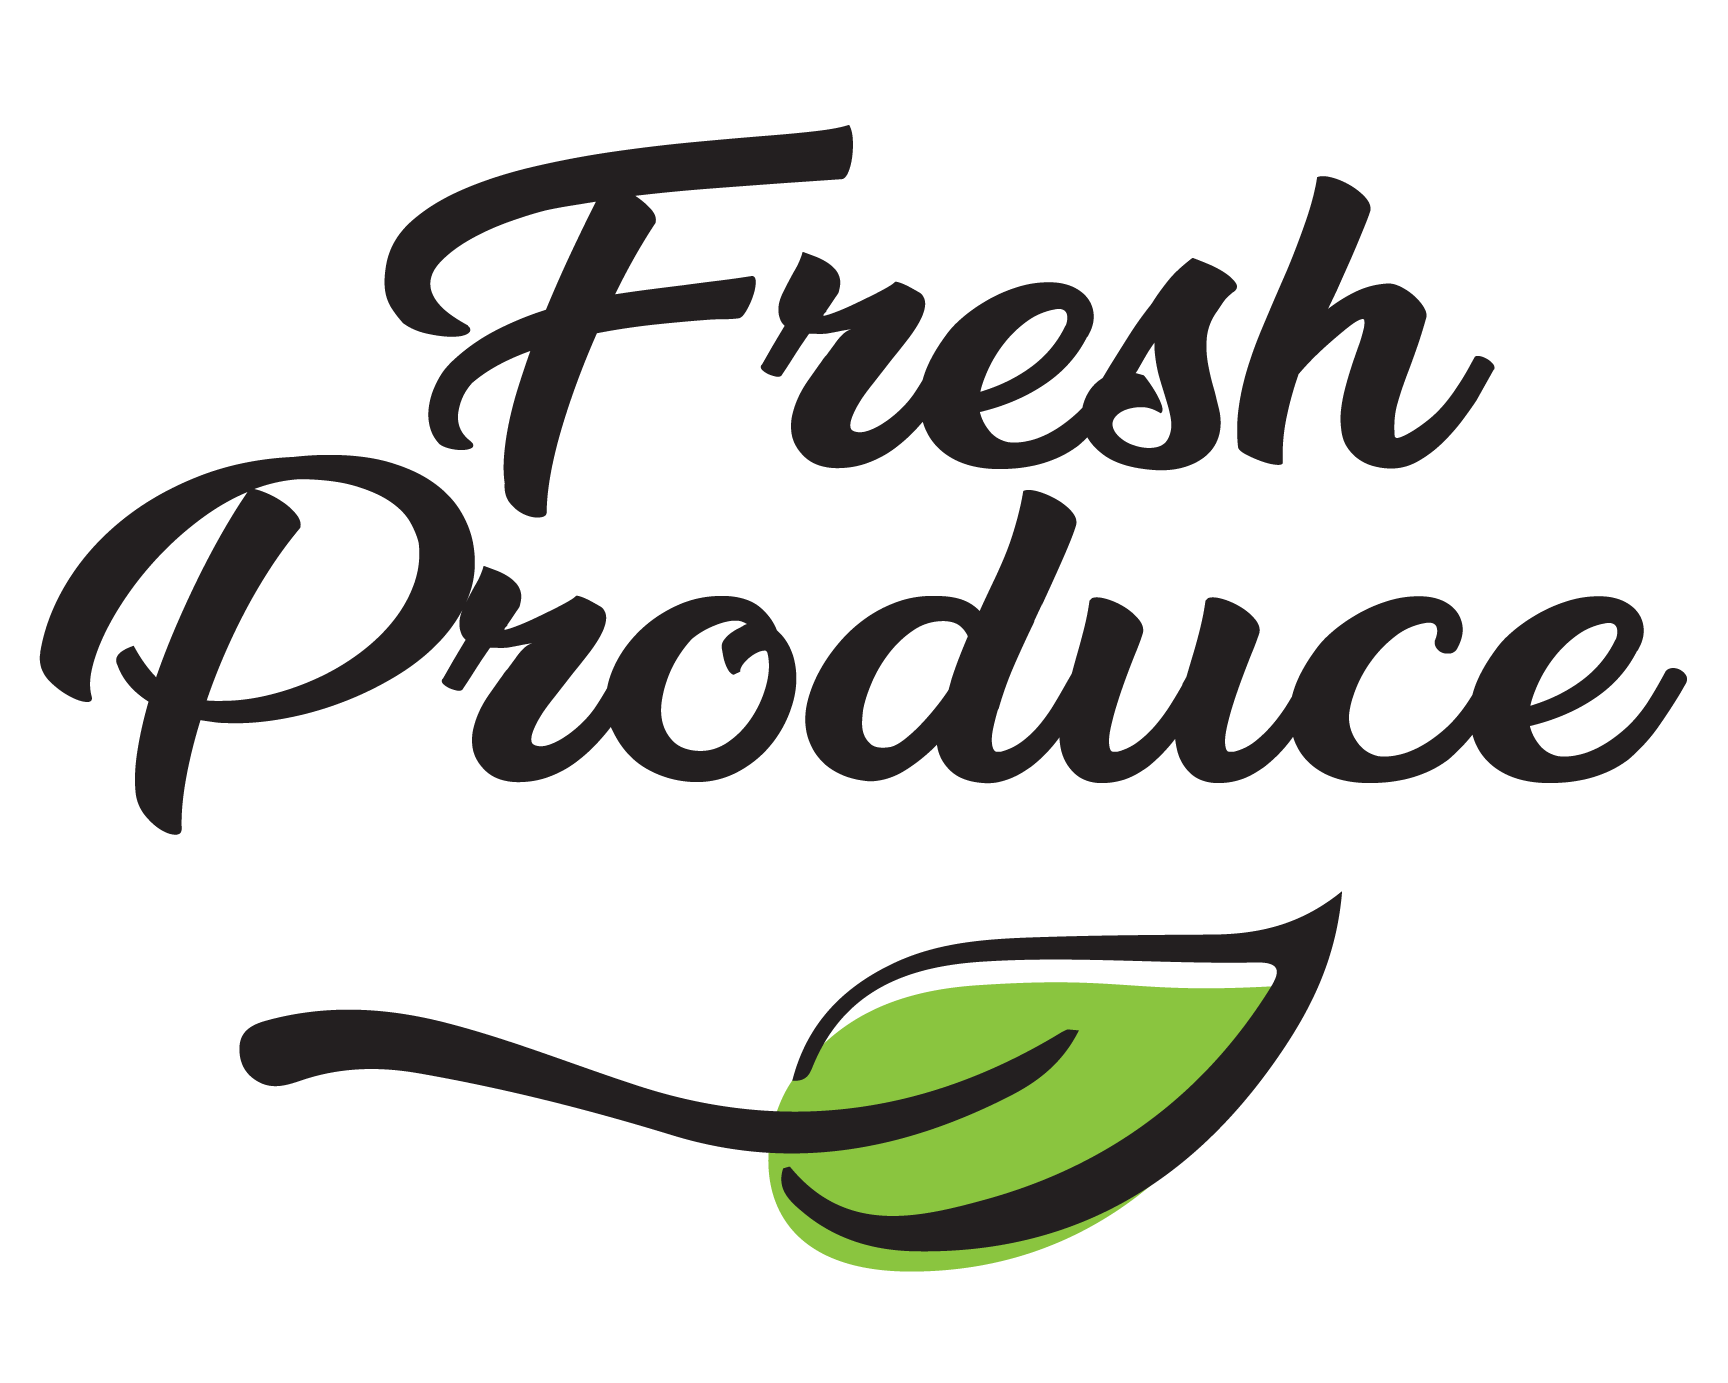 freshproduce2-01.png